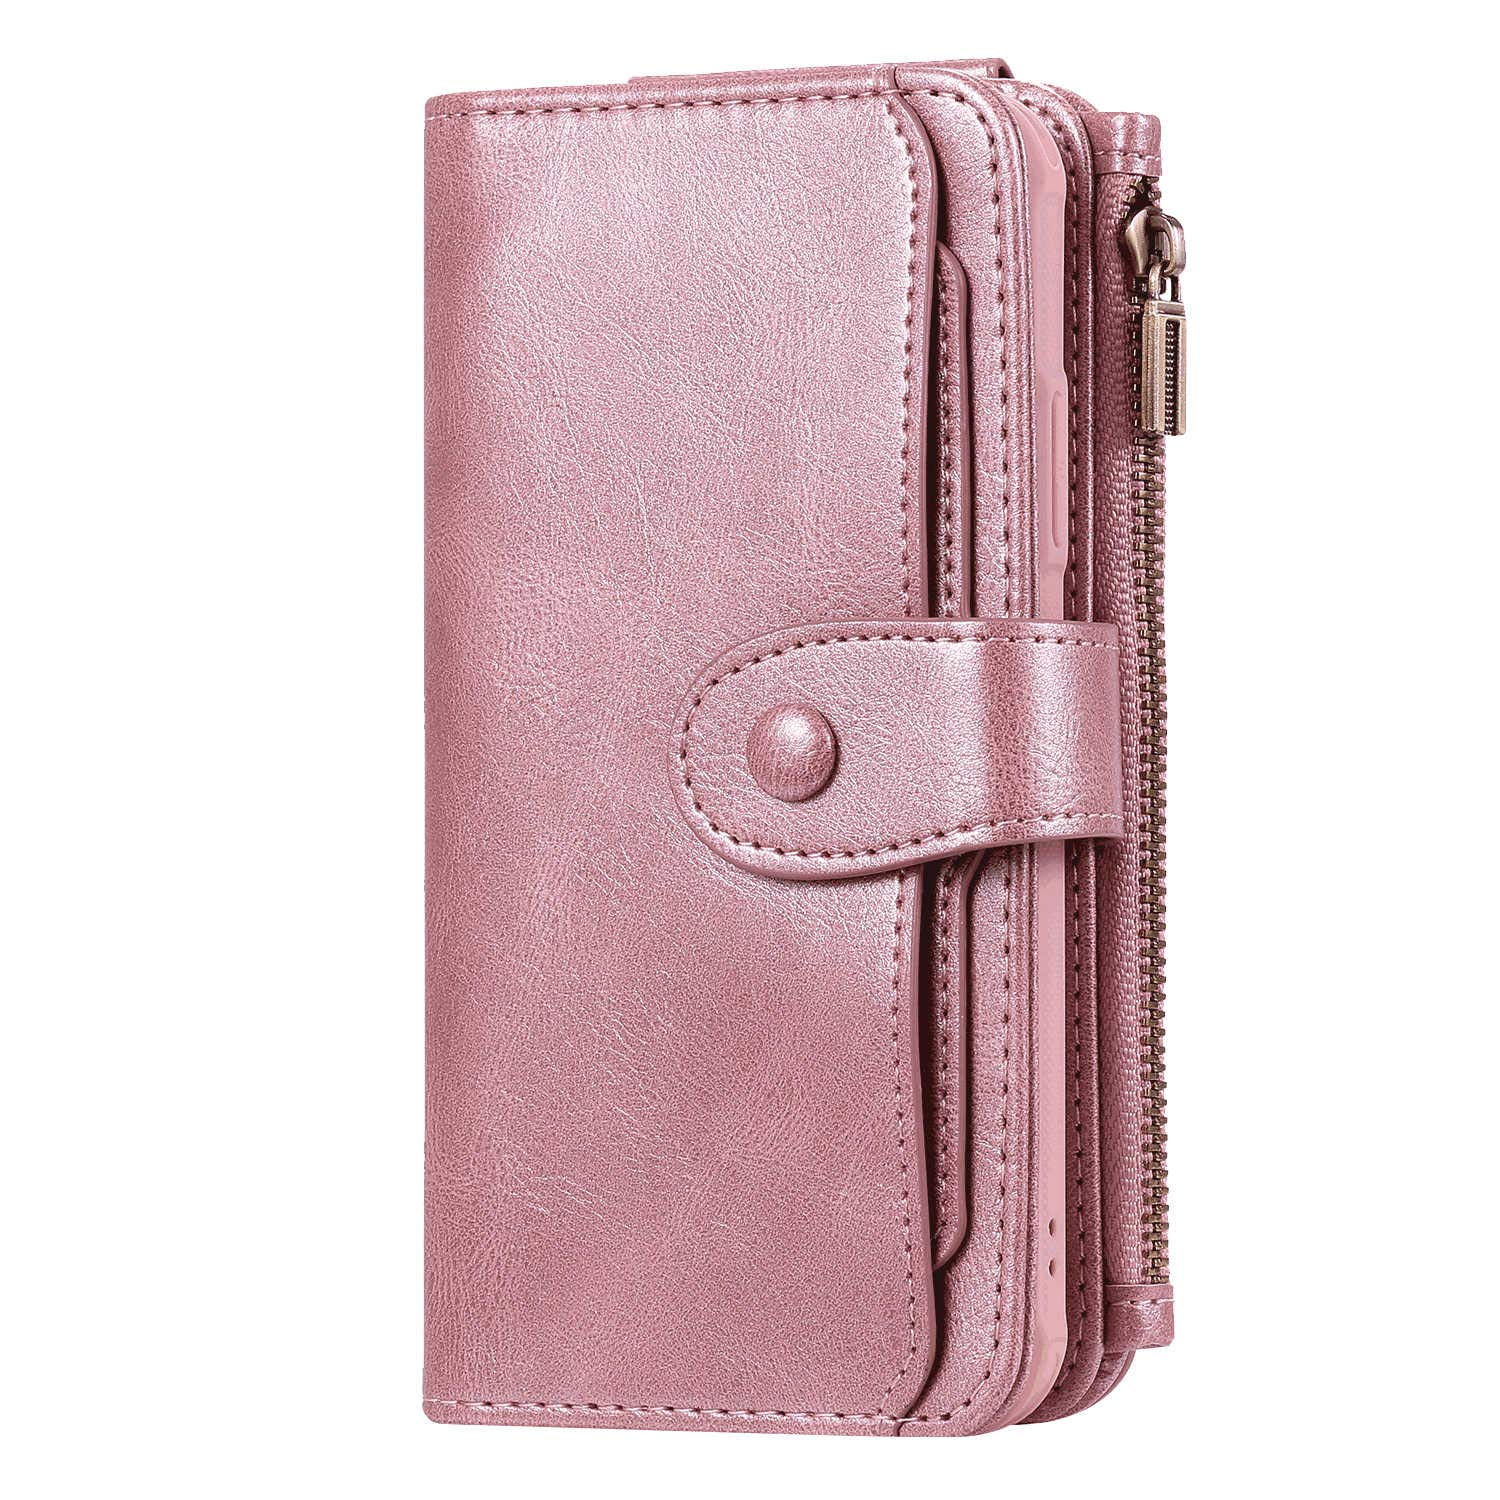 Flip Case for iPhone Xs Leather Cover Business Gifts Wallet with Extra Waterproof Underwater Case